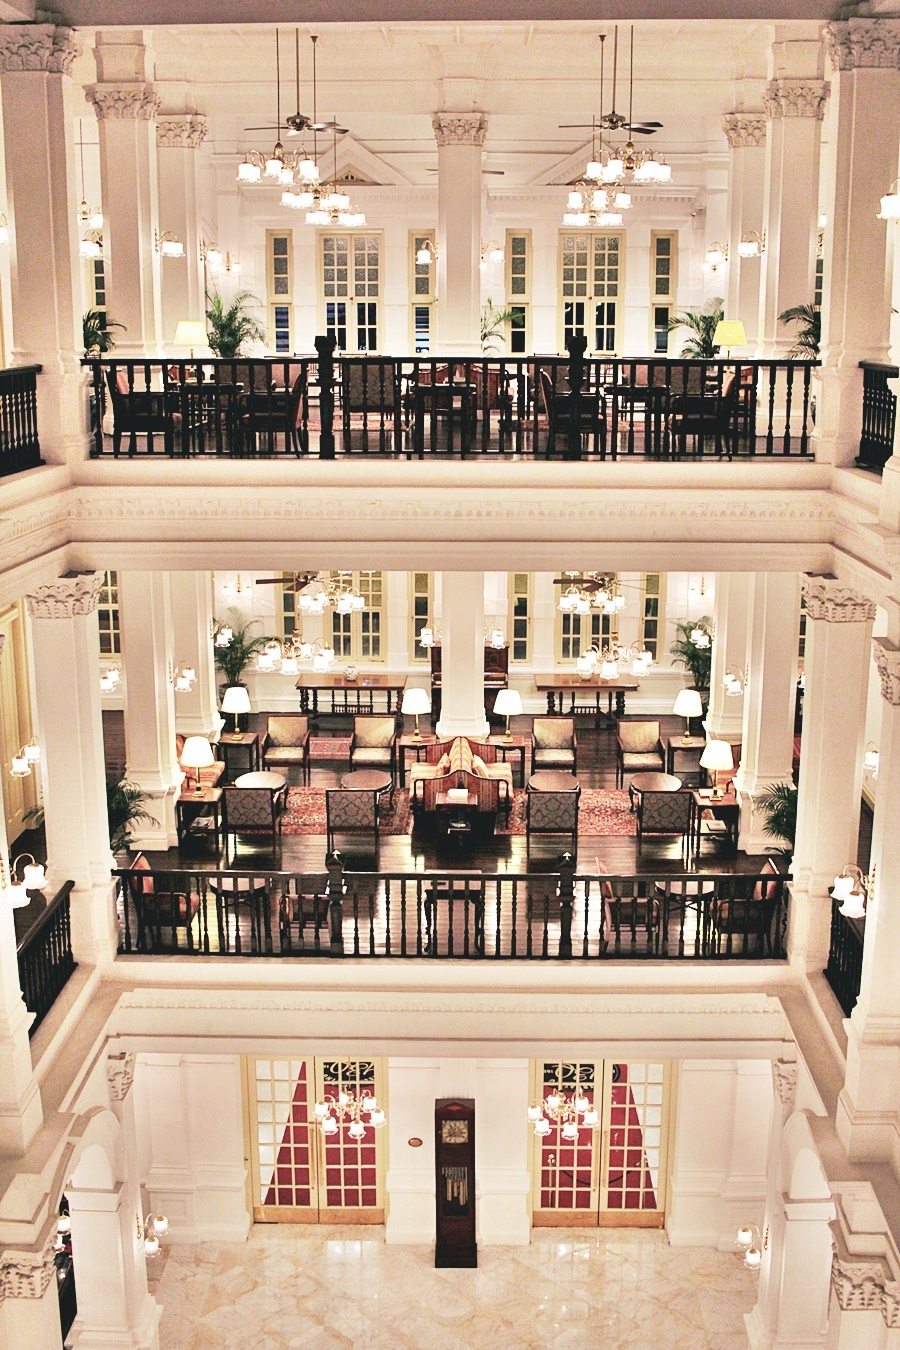 raffles hotel singapore travel blog